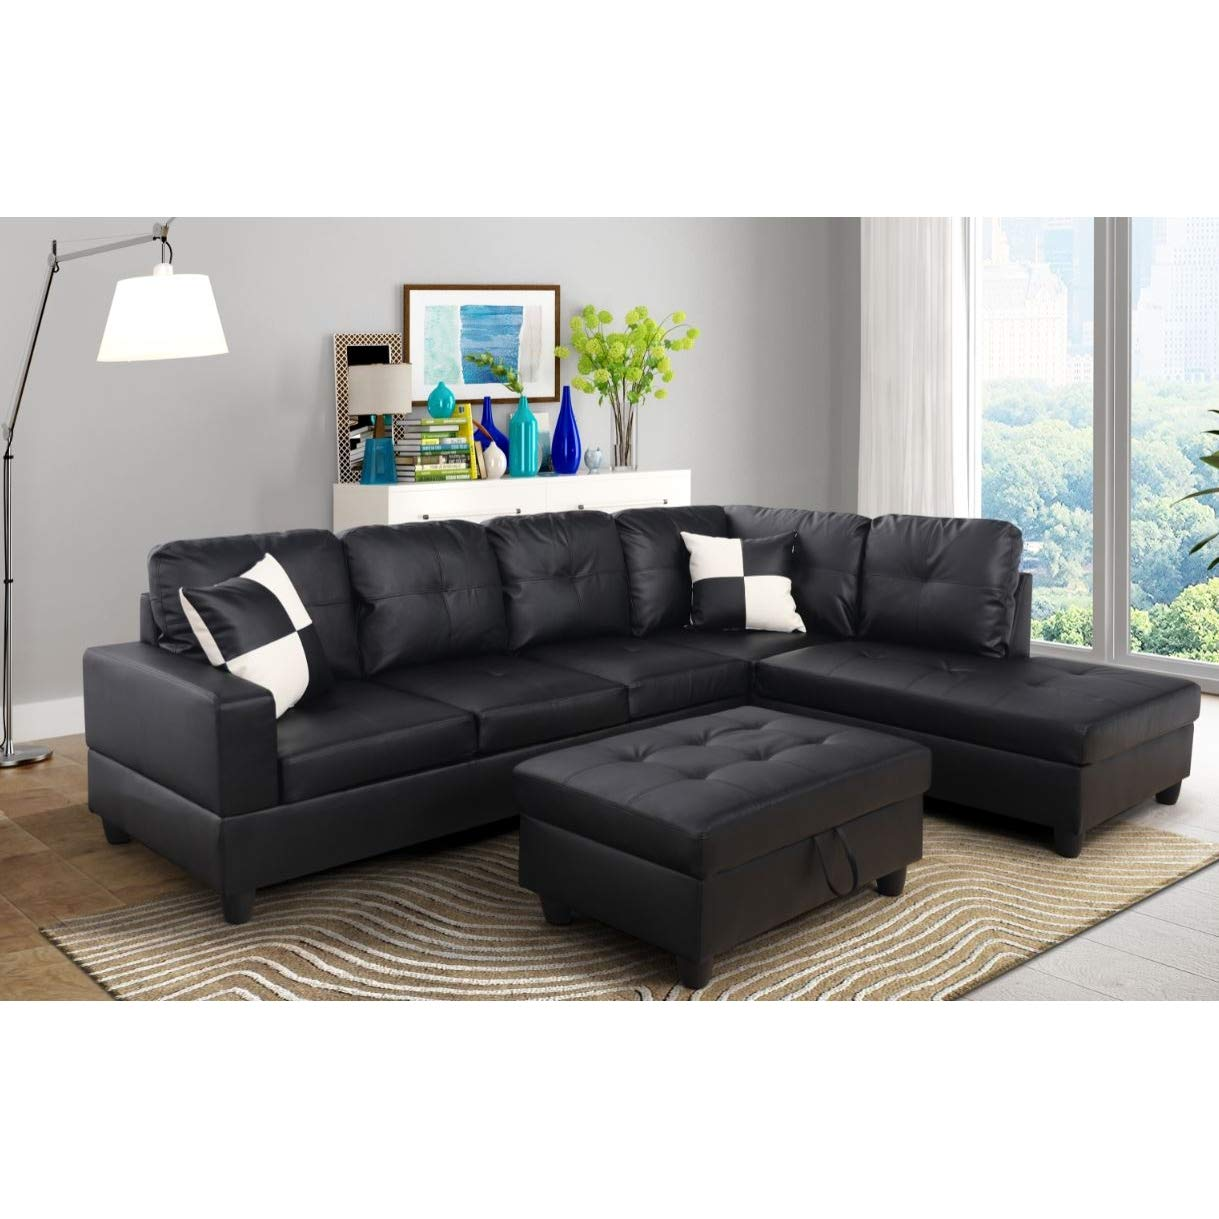 Amazon com aycp furniture black contemporary right facing chaise l shaped sectional sofas living room kitchen dining